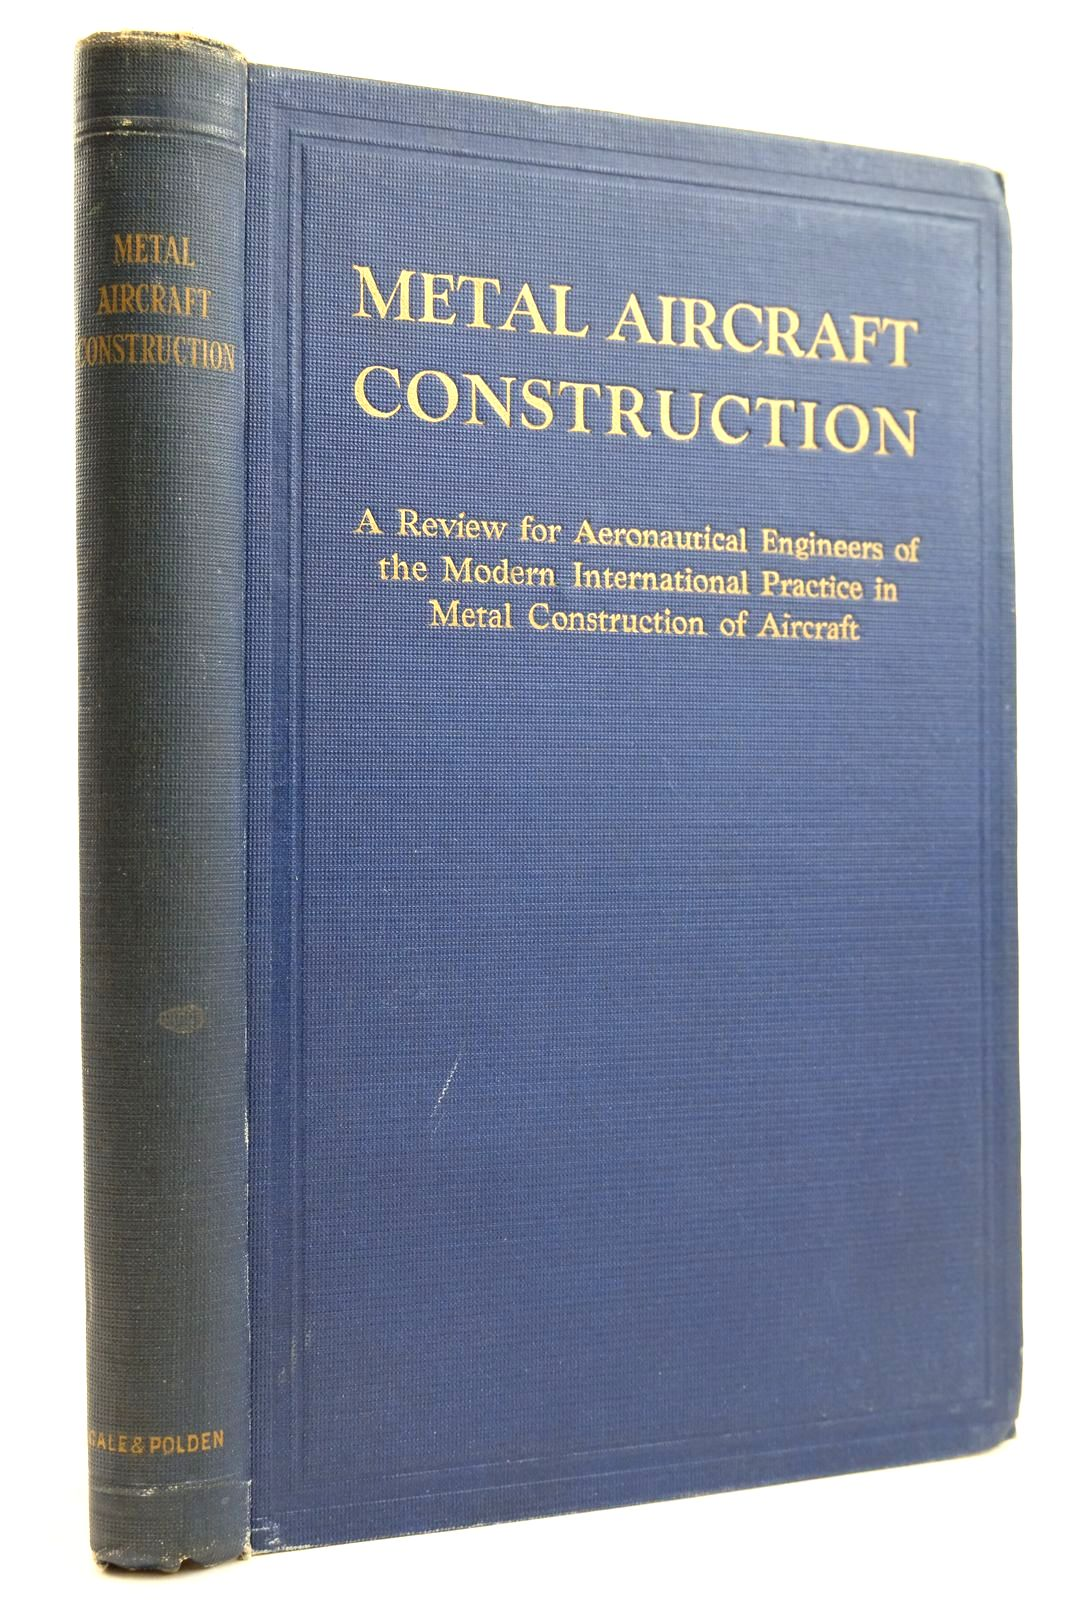 Photo of METAL AIRCRAFT CONSTRUCTION- Stock Number: 2132222